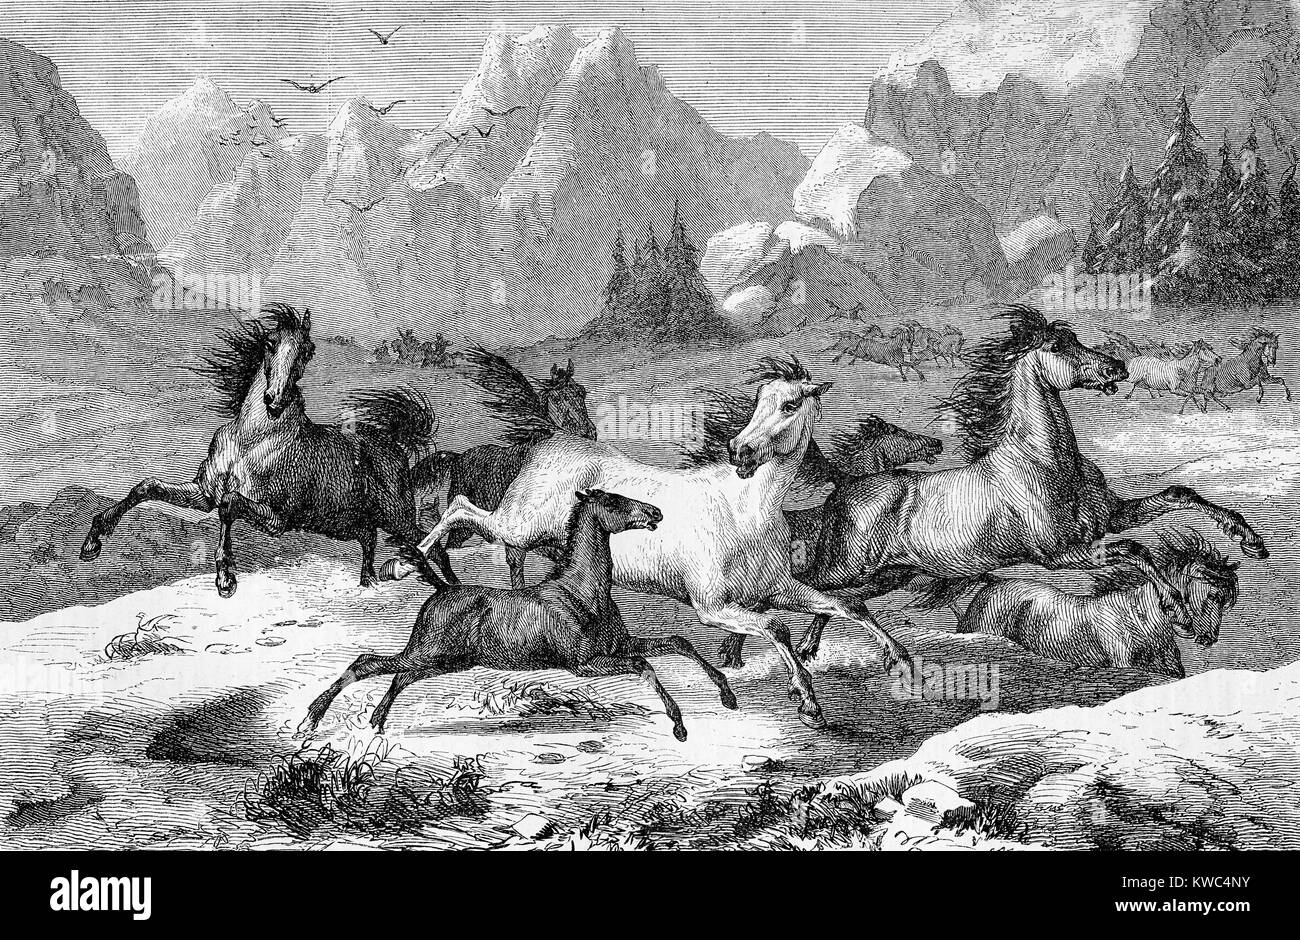 Beautiful Vintage Engraving Of Wild Horses Running Free In A Mountain Stock Photo Alamy